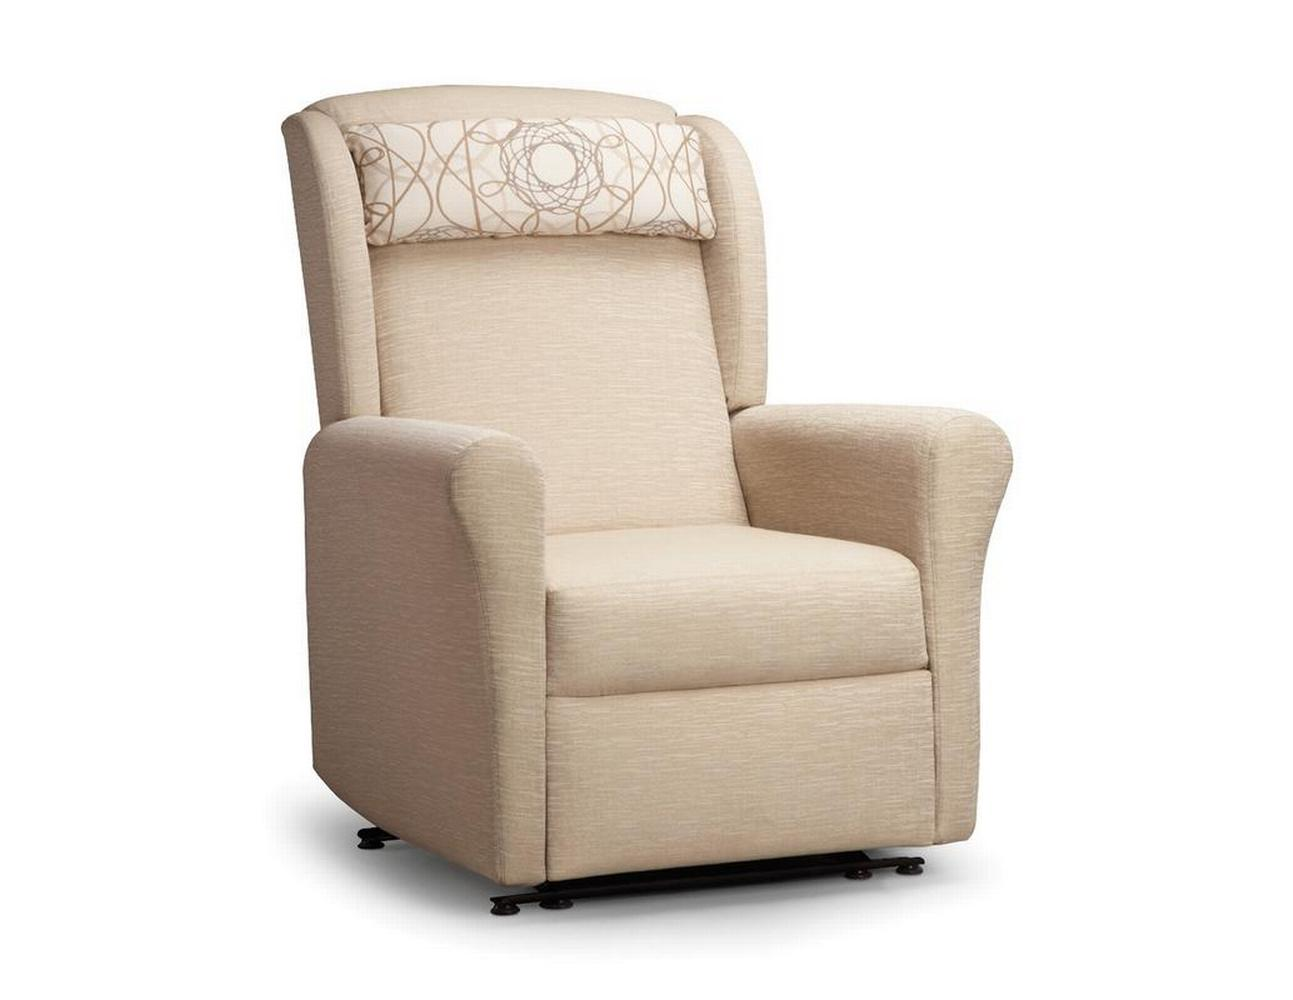 Wallsaver Recliner  sc 1 st  Trinity Furniture & Facelift2 Revival Wallsaver Recliner | Trinity Furniture islam-shia.org